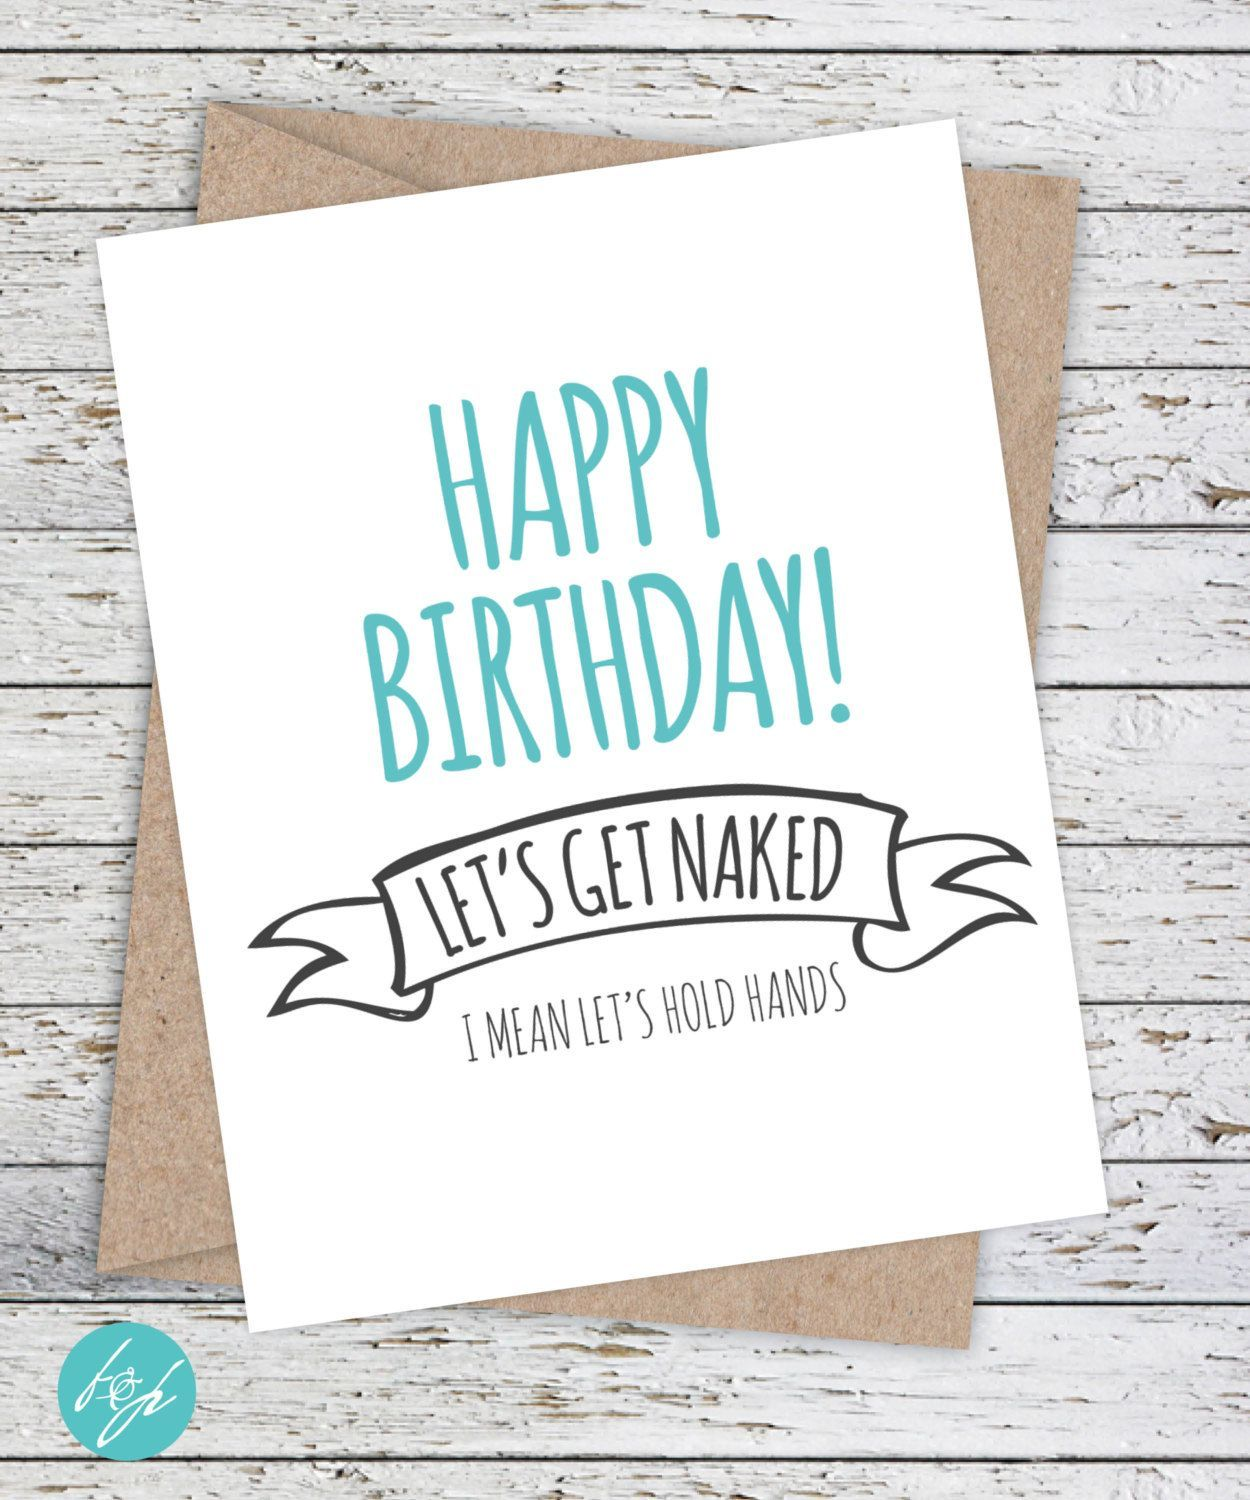 25 Funny Pictures For Boyfriend Happy Birthday Boyfriend Birthday Cards For Girlfriend Funny Birthday Cards